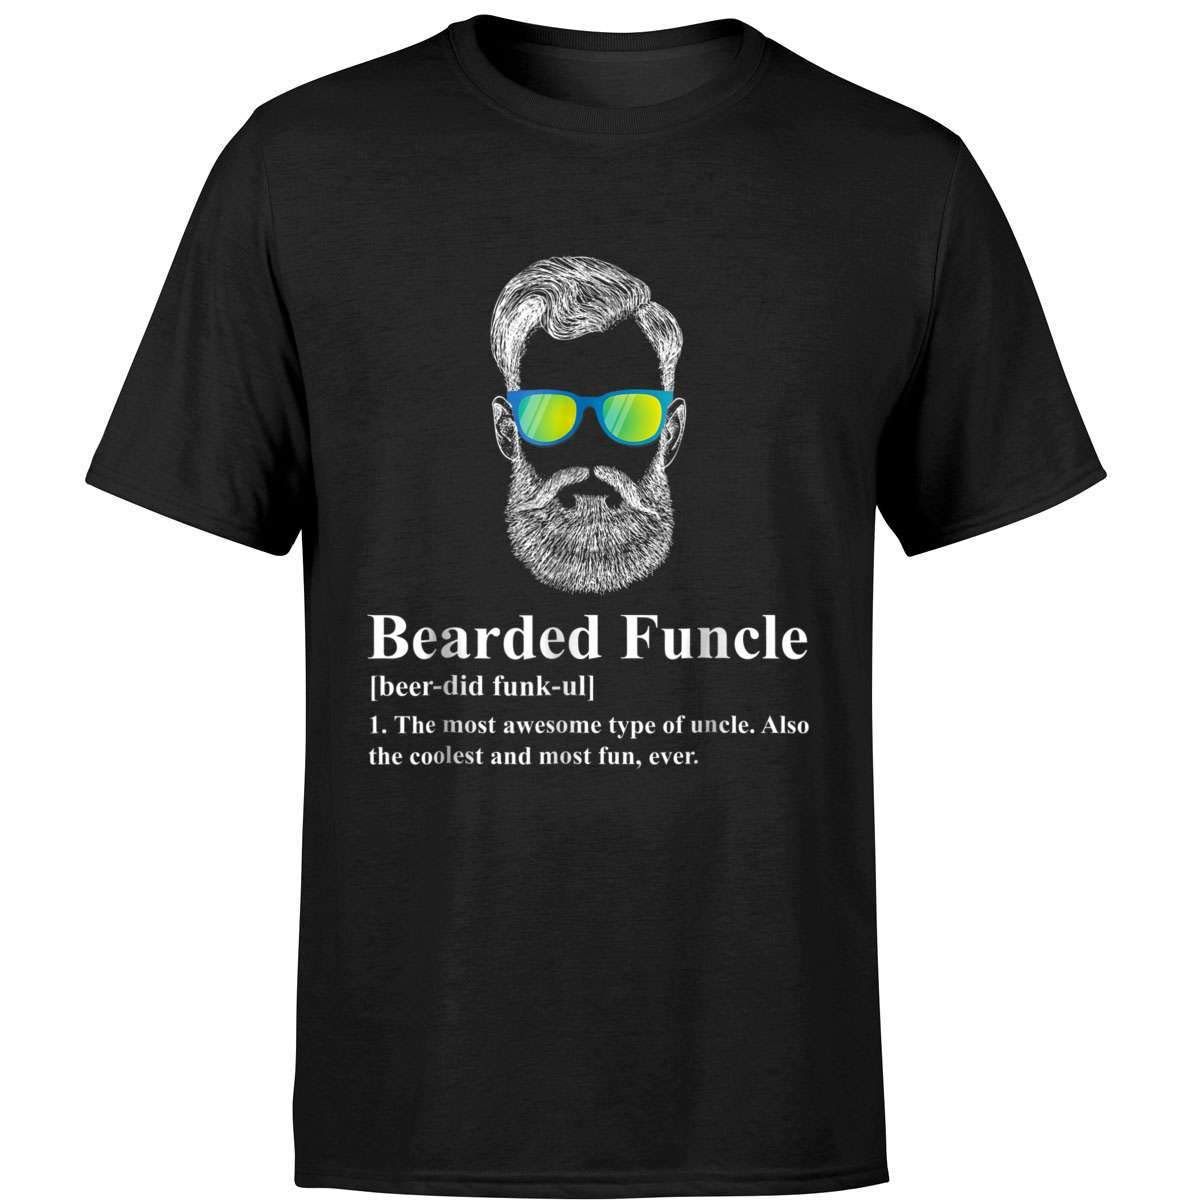 Momlifeliving Funny Bearded Funcle Shirt For